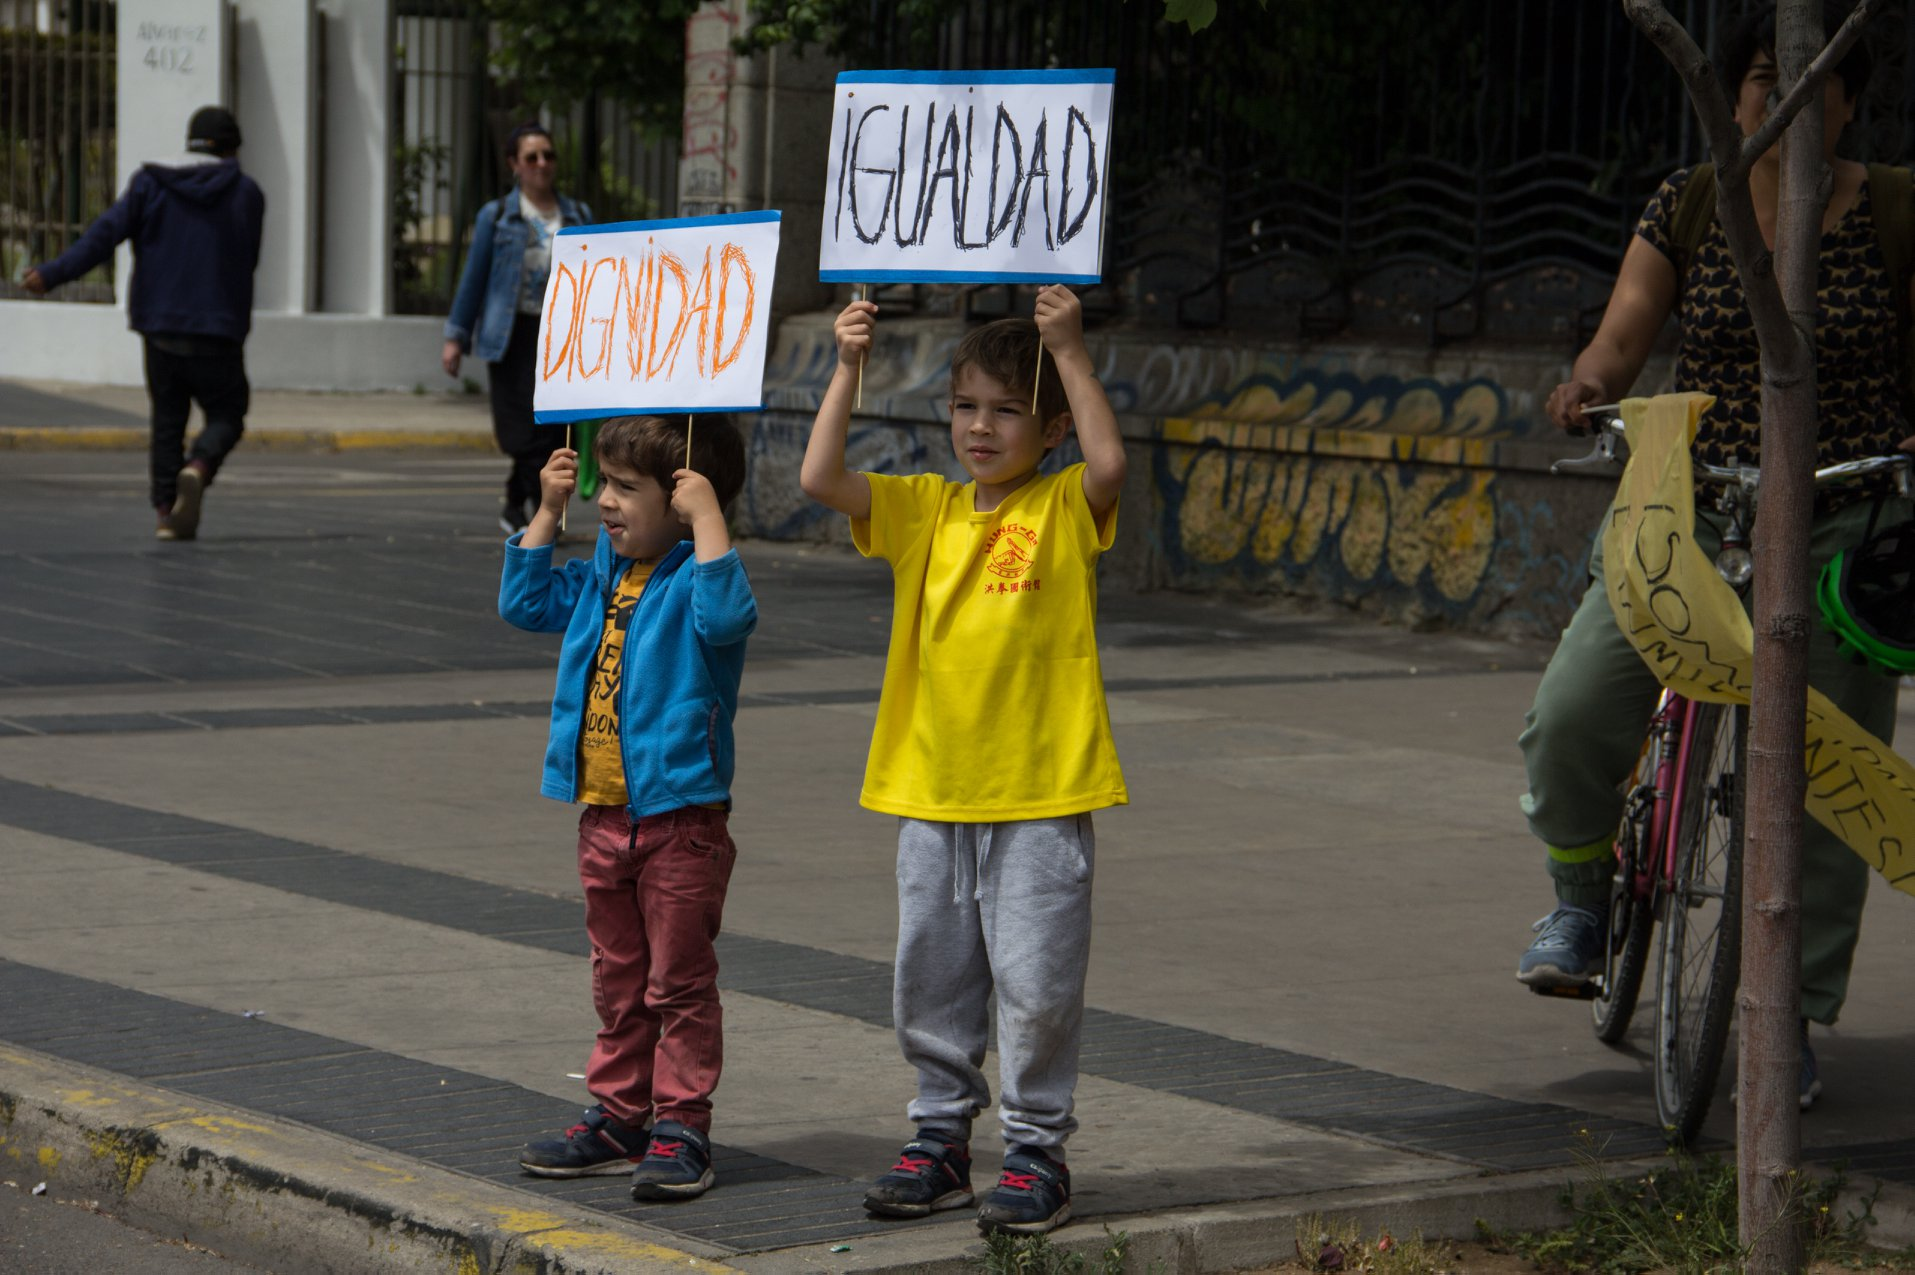 Two boys protest in Chile, holding up signs that read 'dignity' and 'equality.'